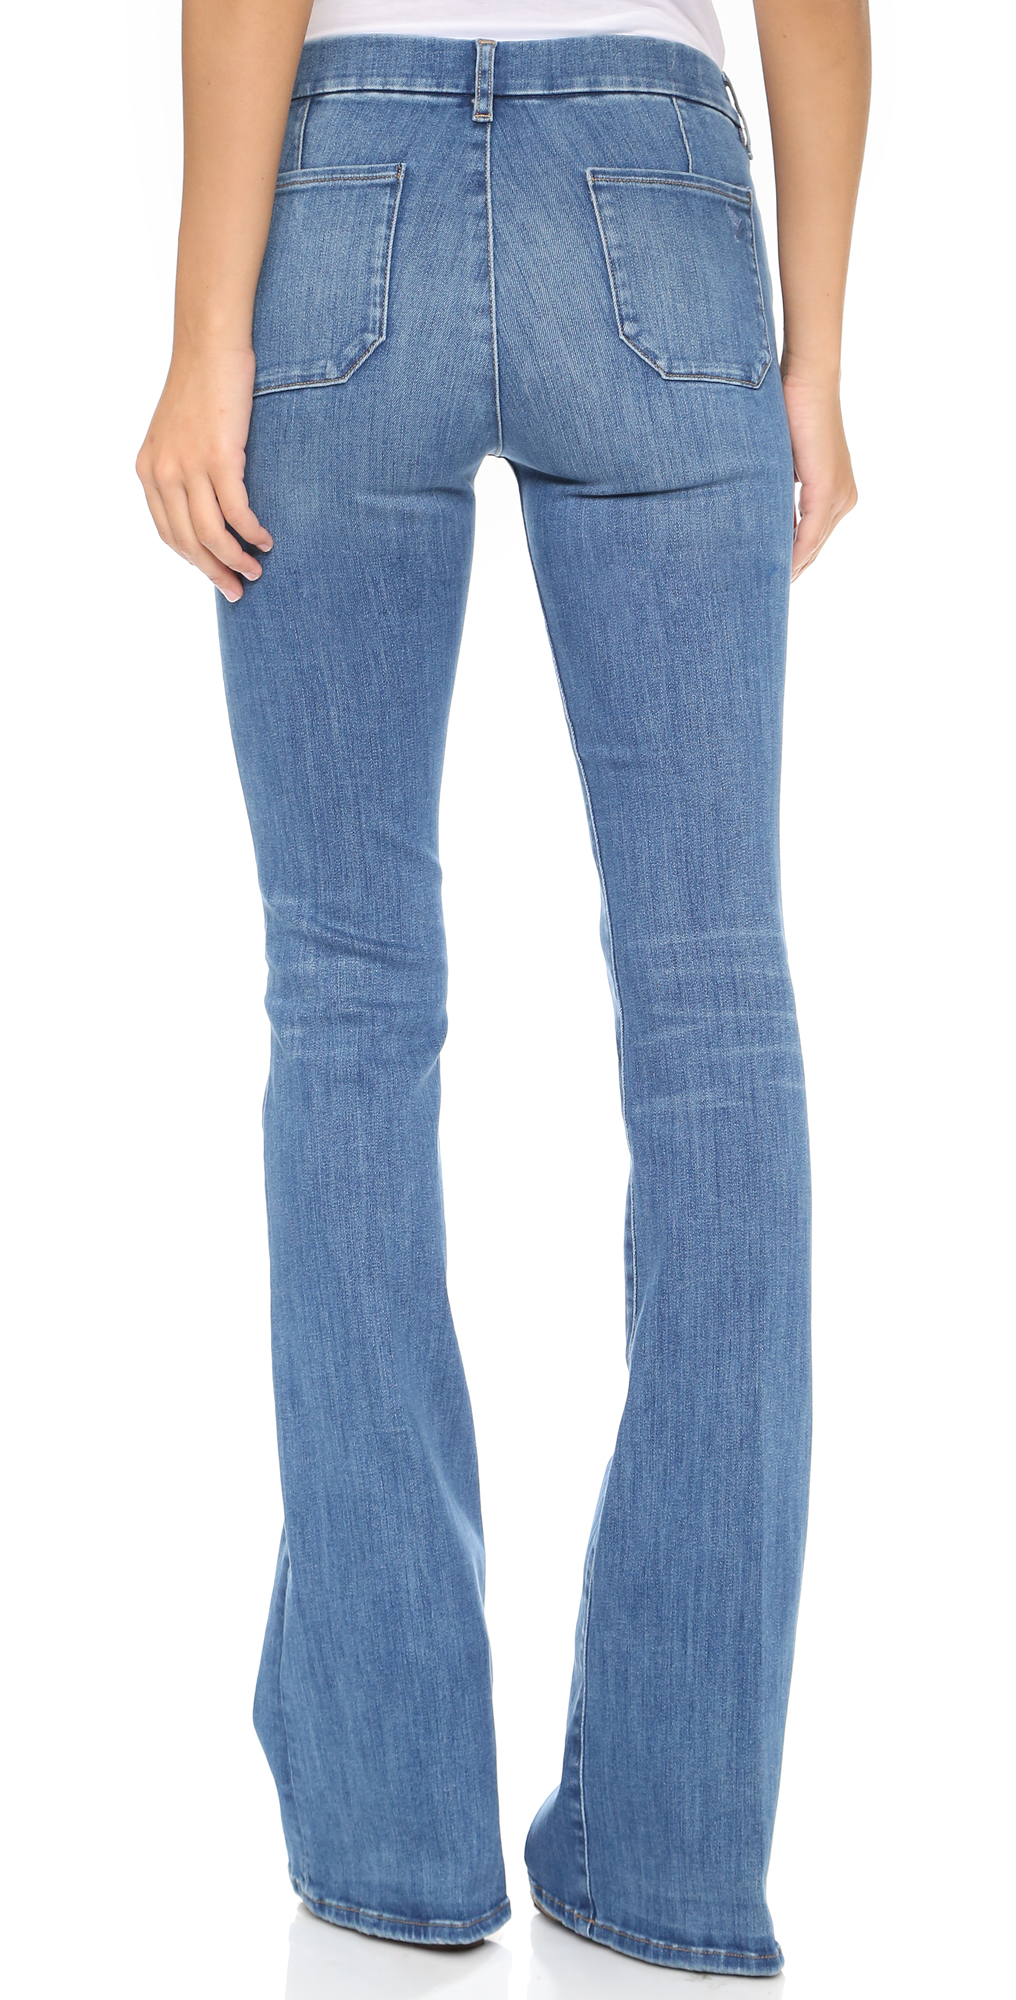 M.i.h Jeans The Marrakesh Flare Jeans